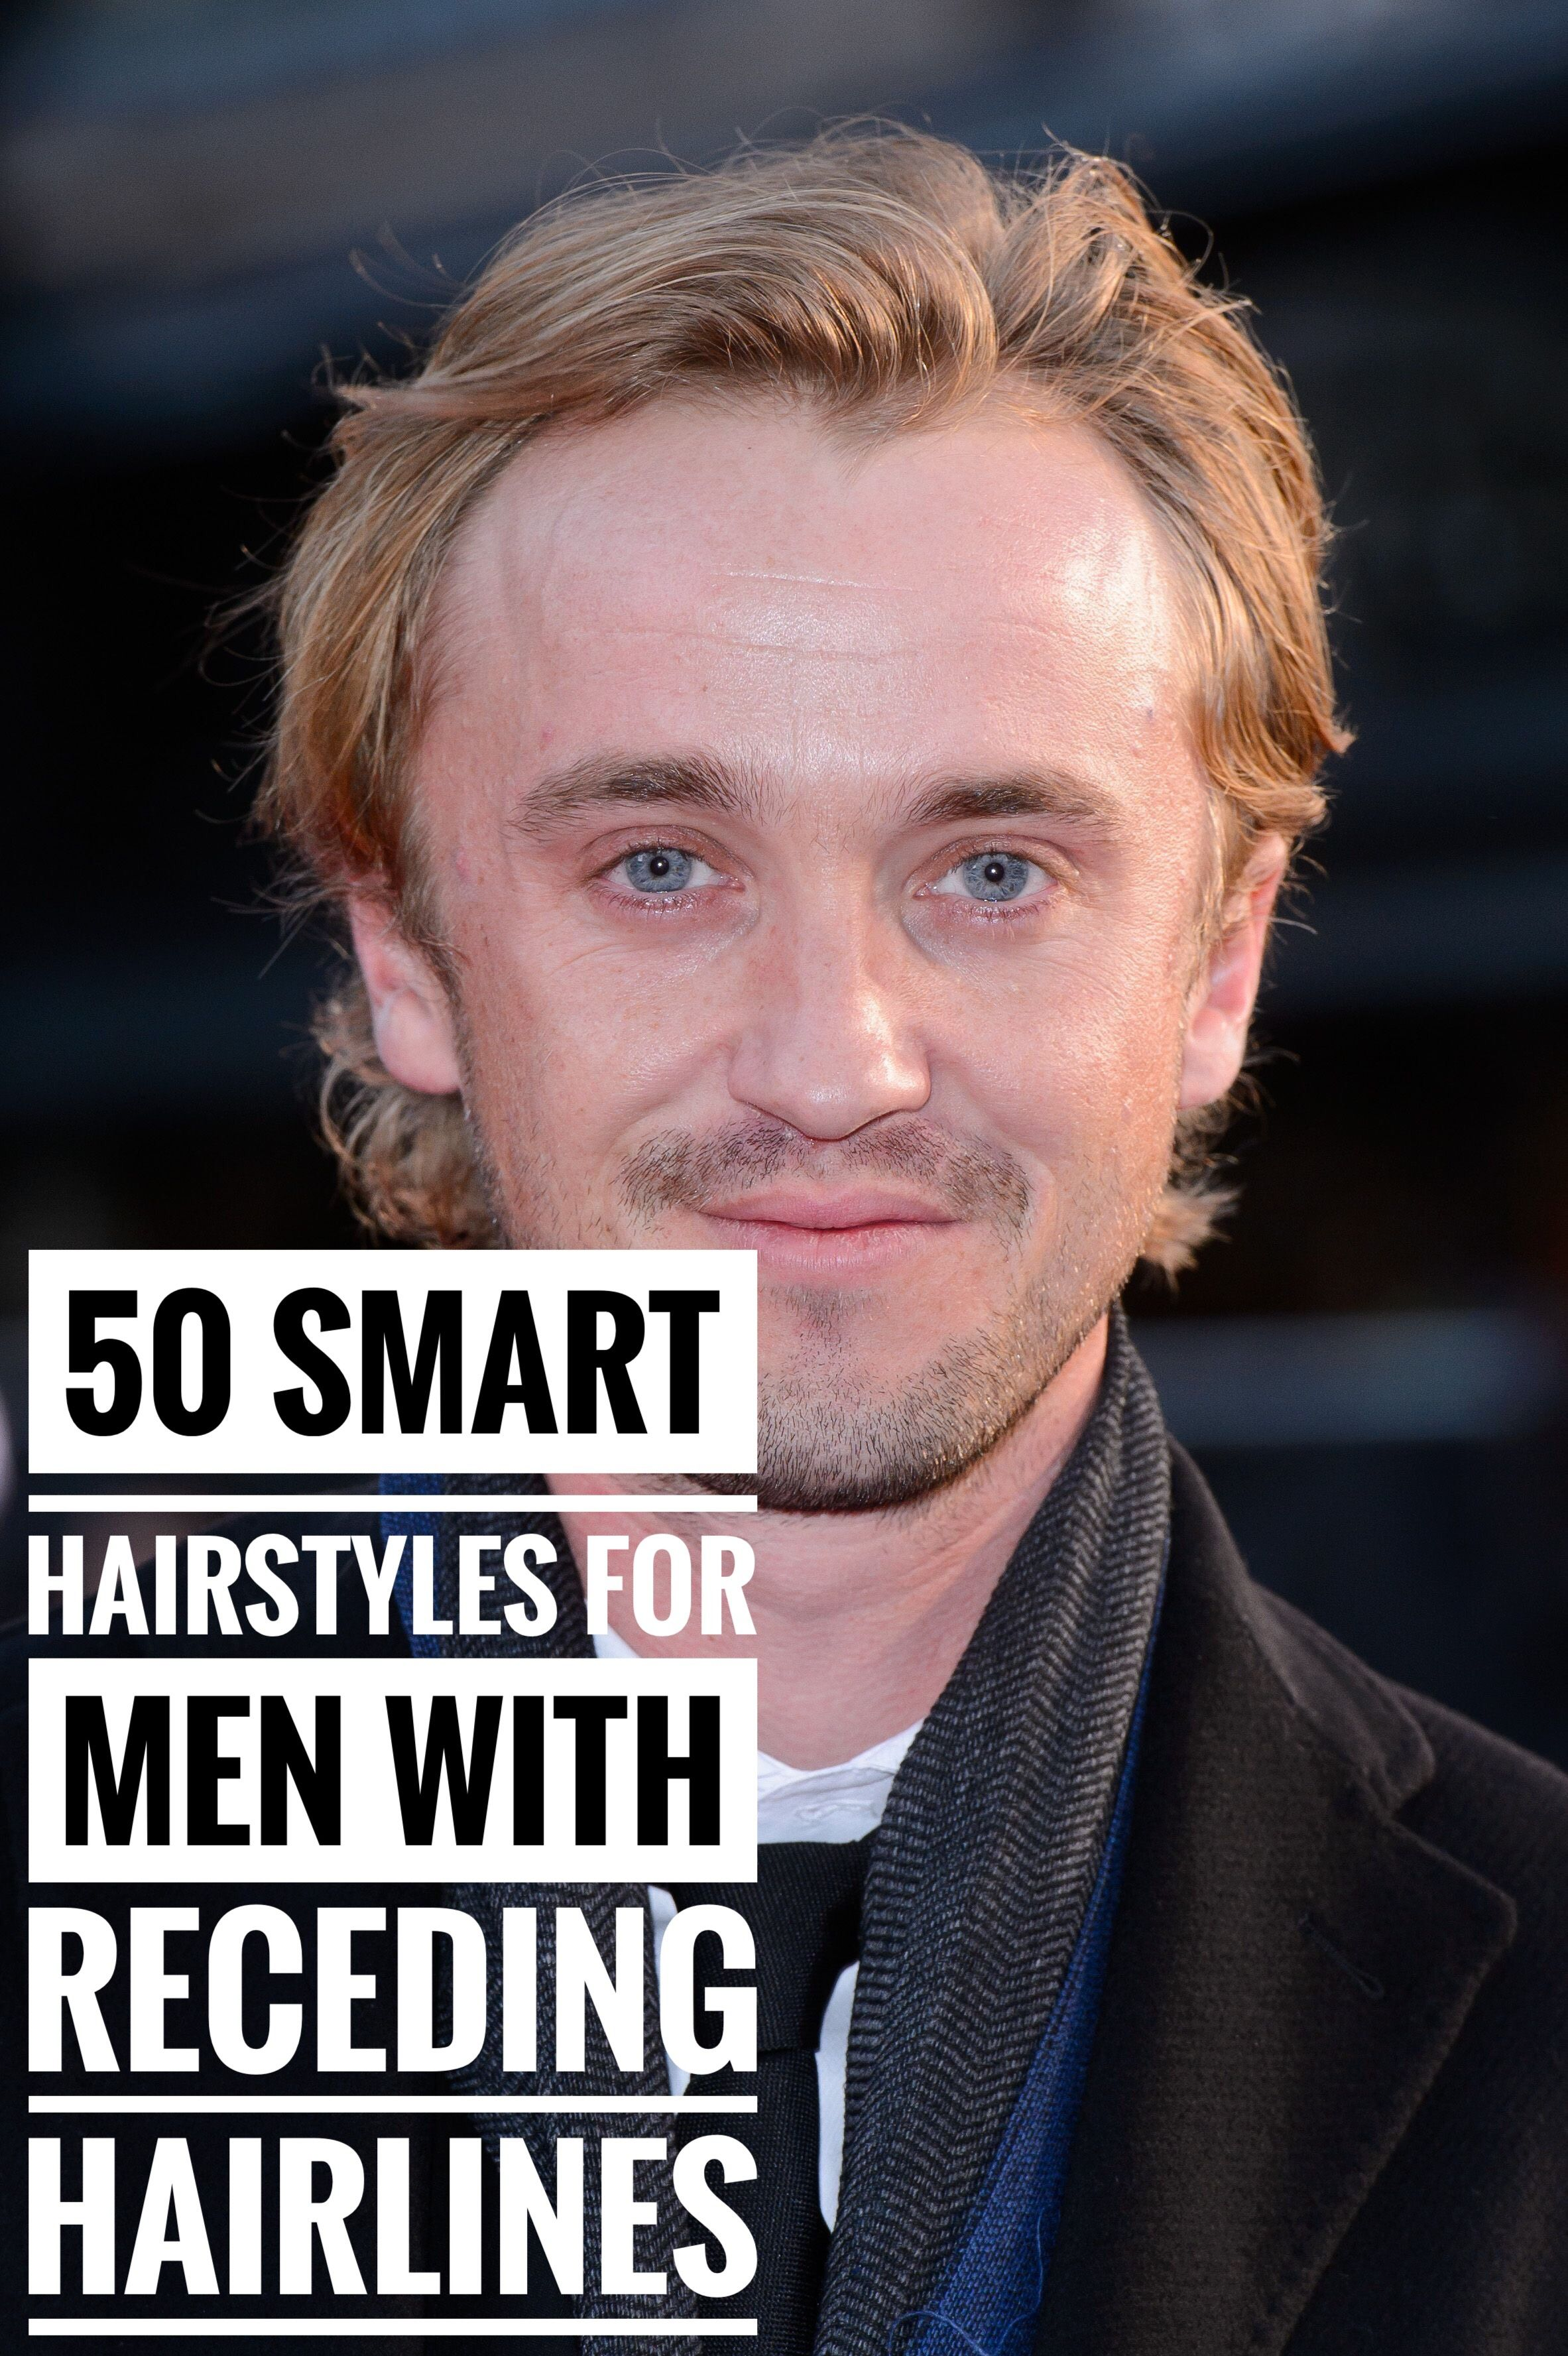 50 hairstyles for men with receding hairlines hairstyles